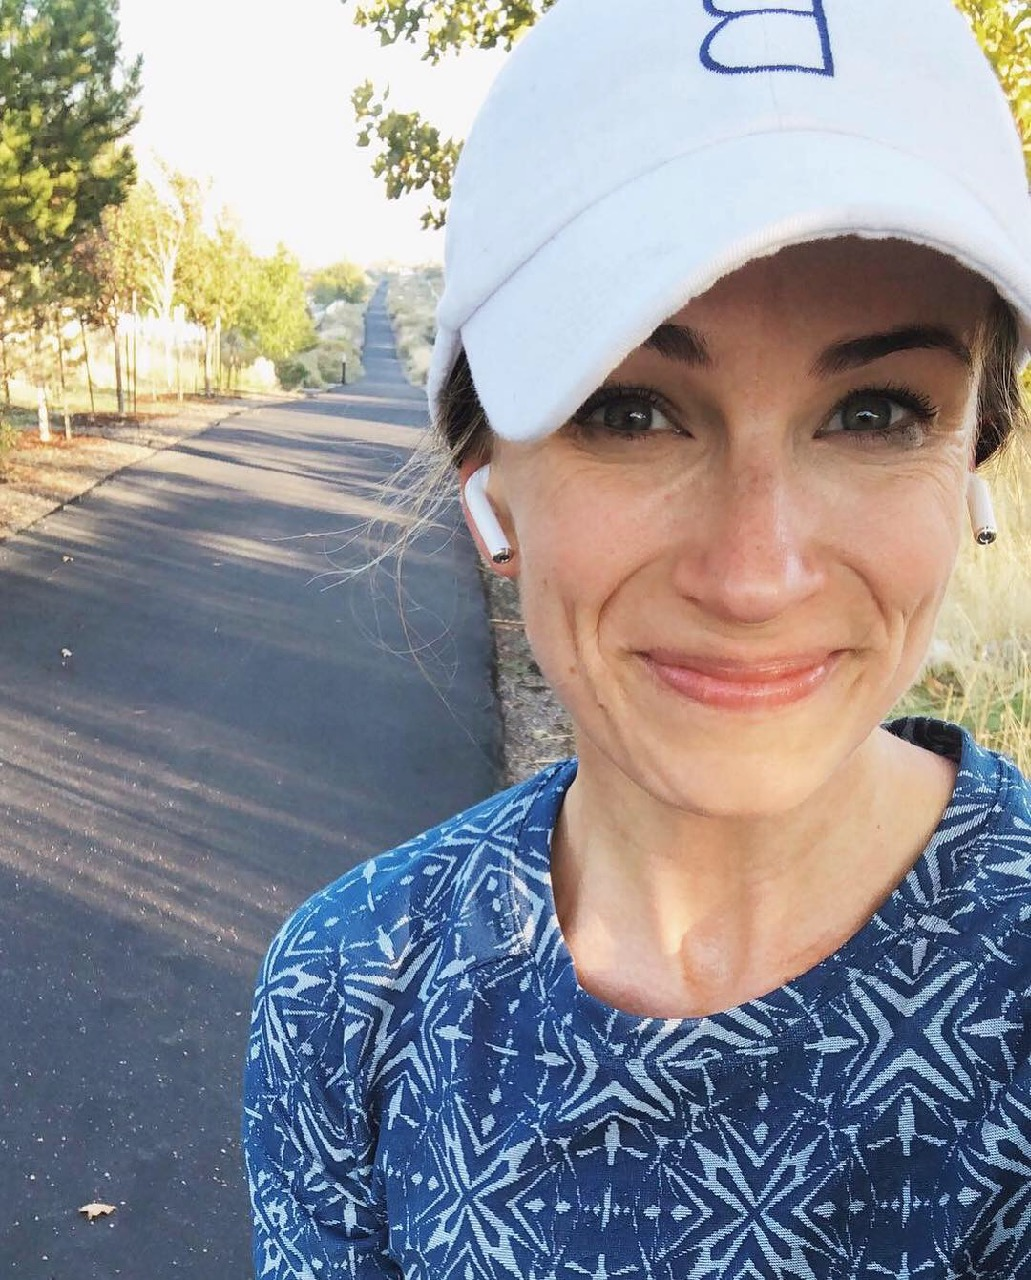 runner with airpods listening to the best running music